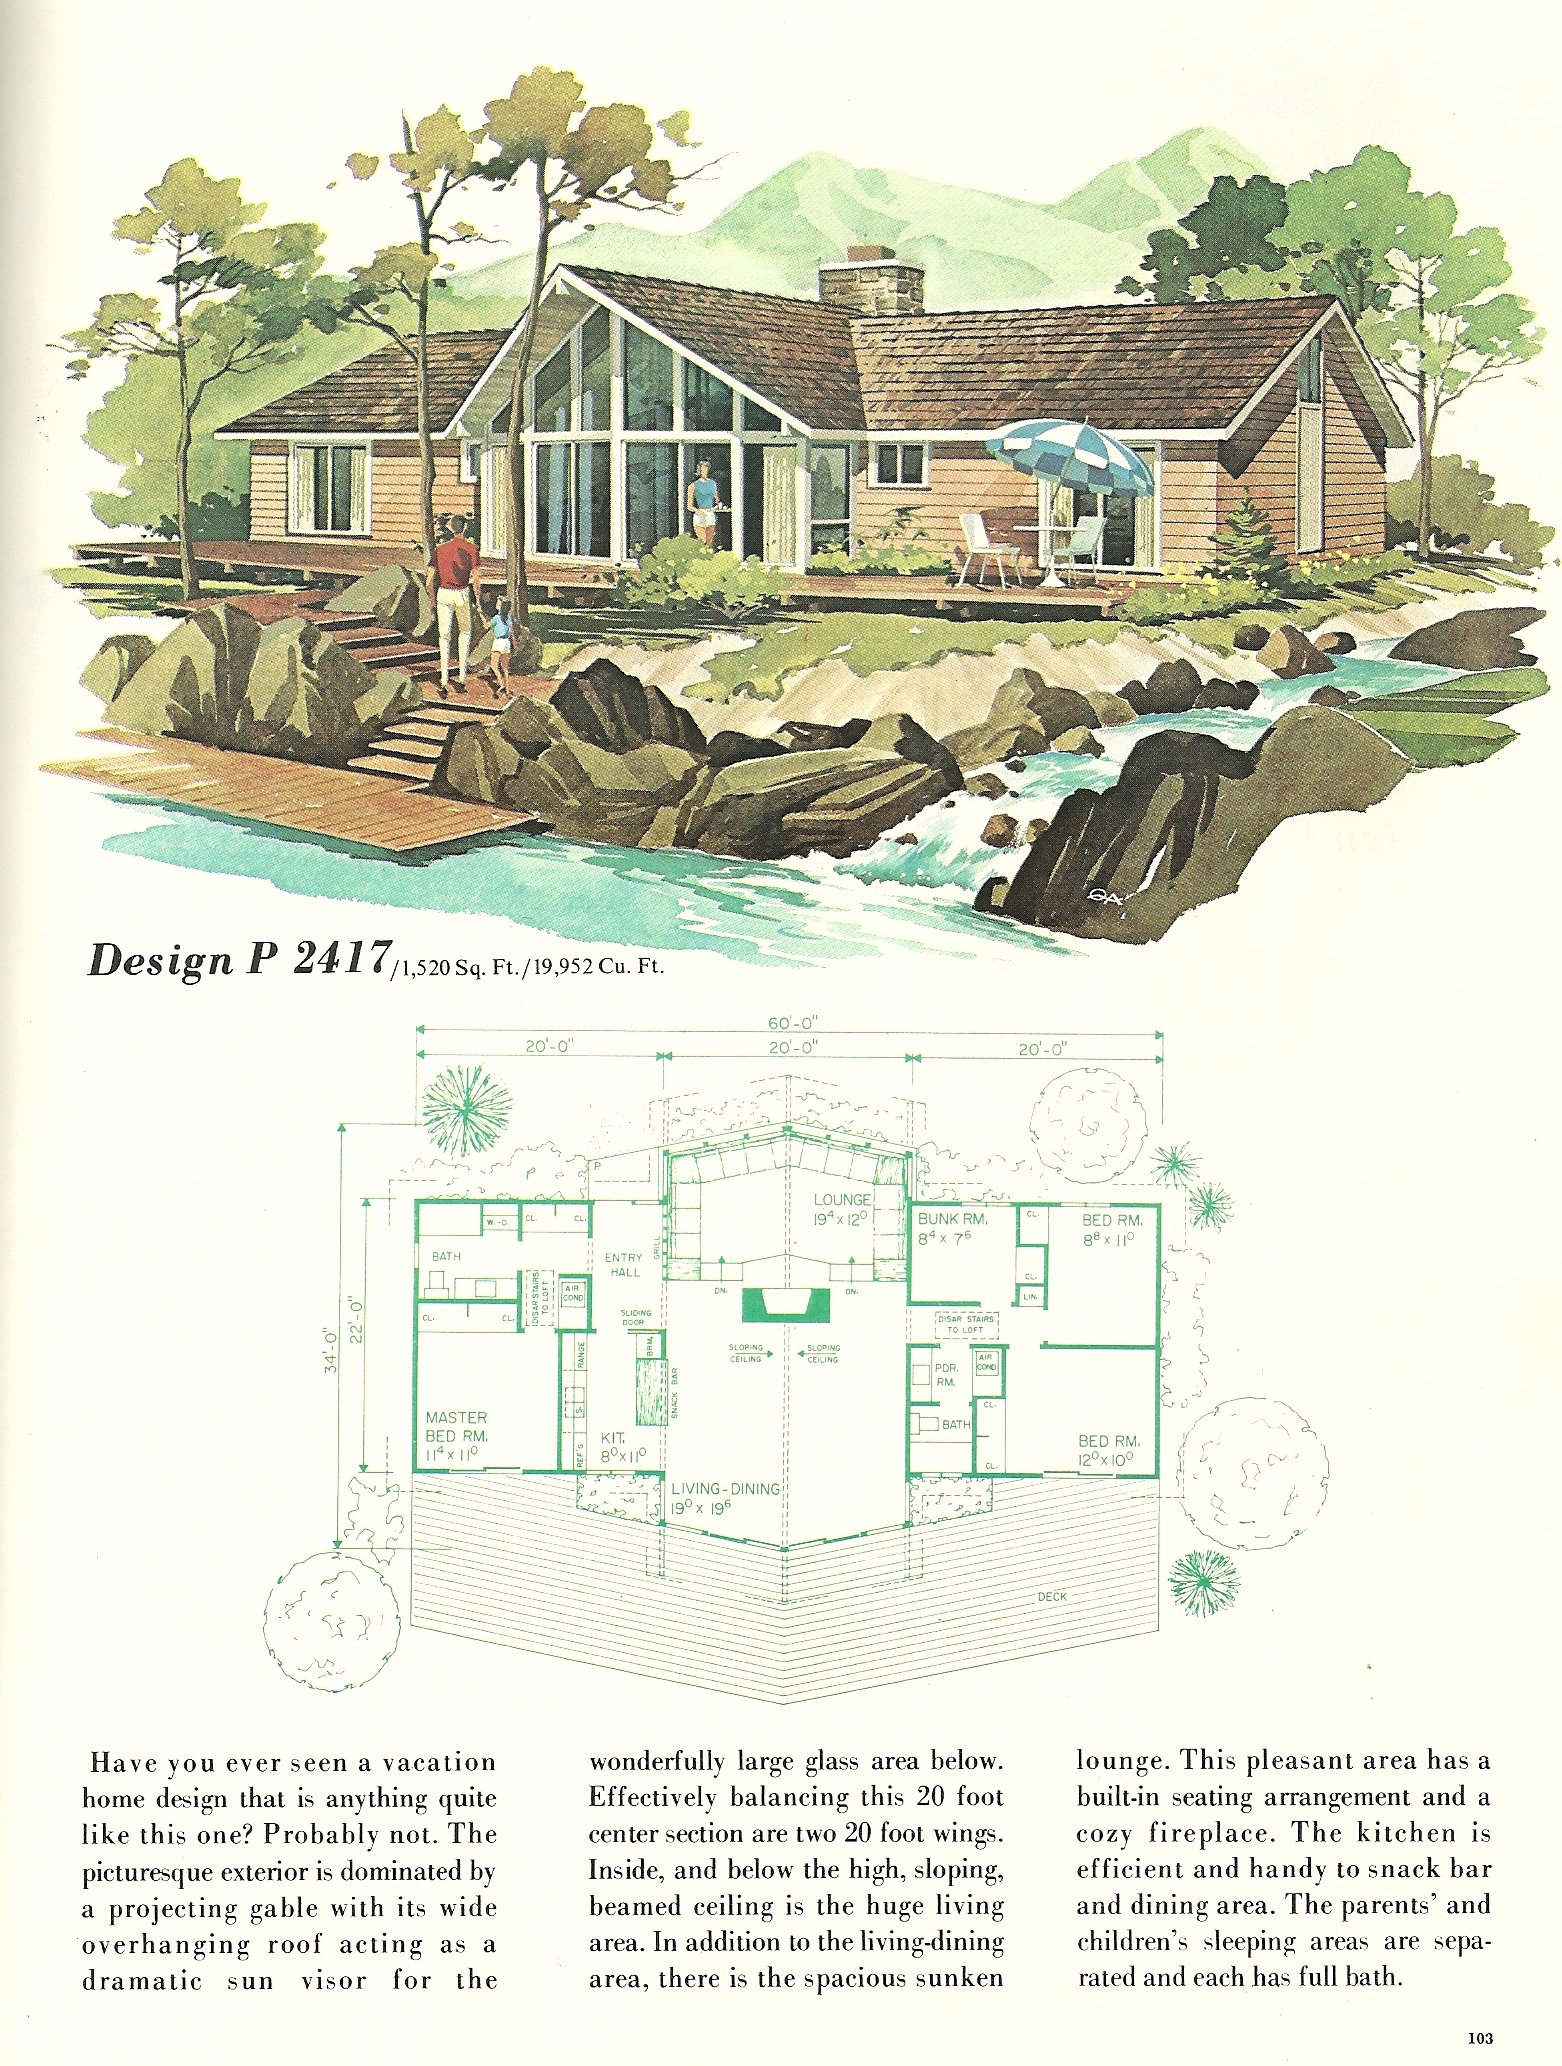 Vintage Vacation Home Plans 2417 | Antique Alter Ego